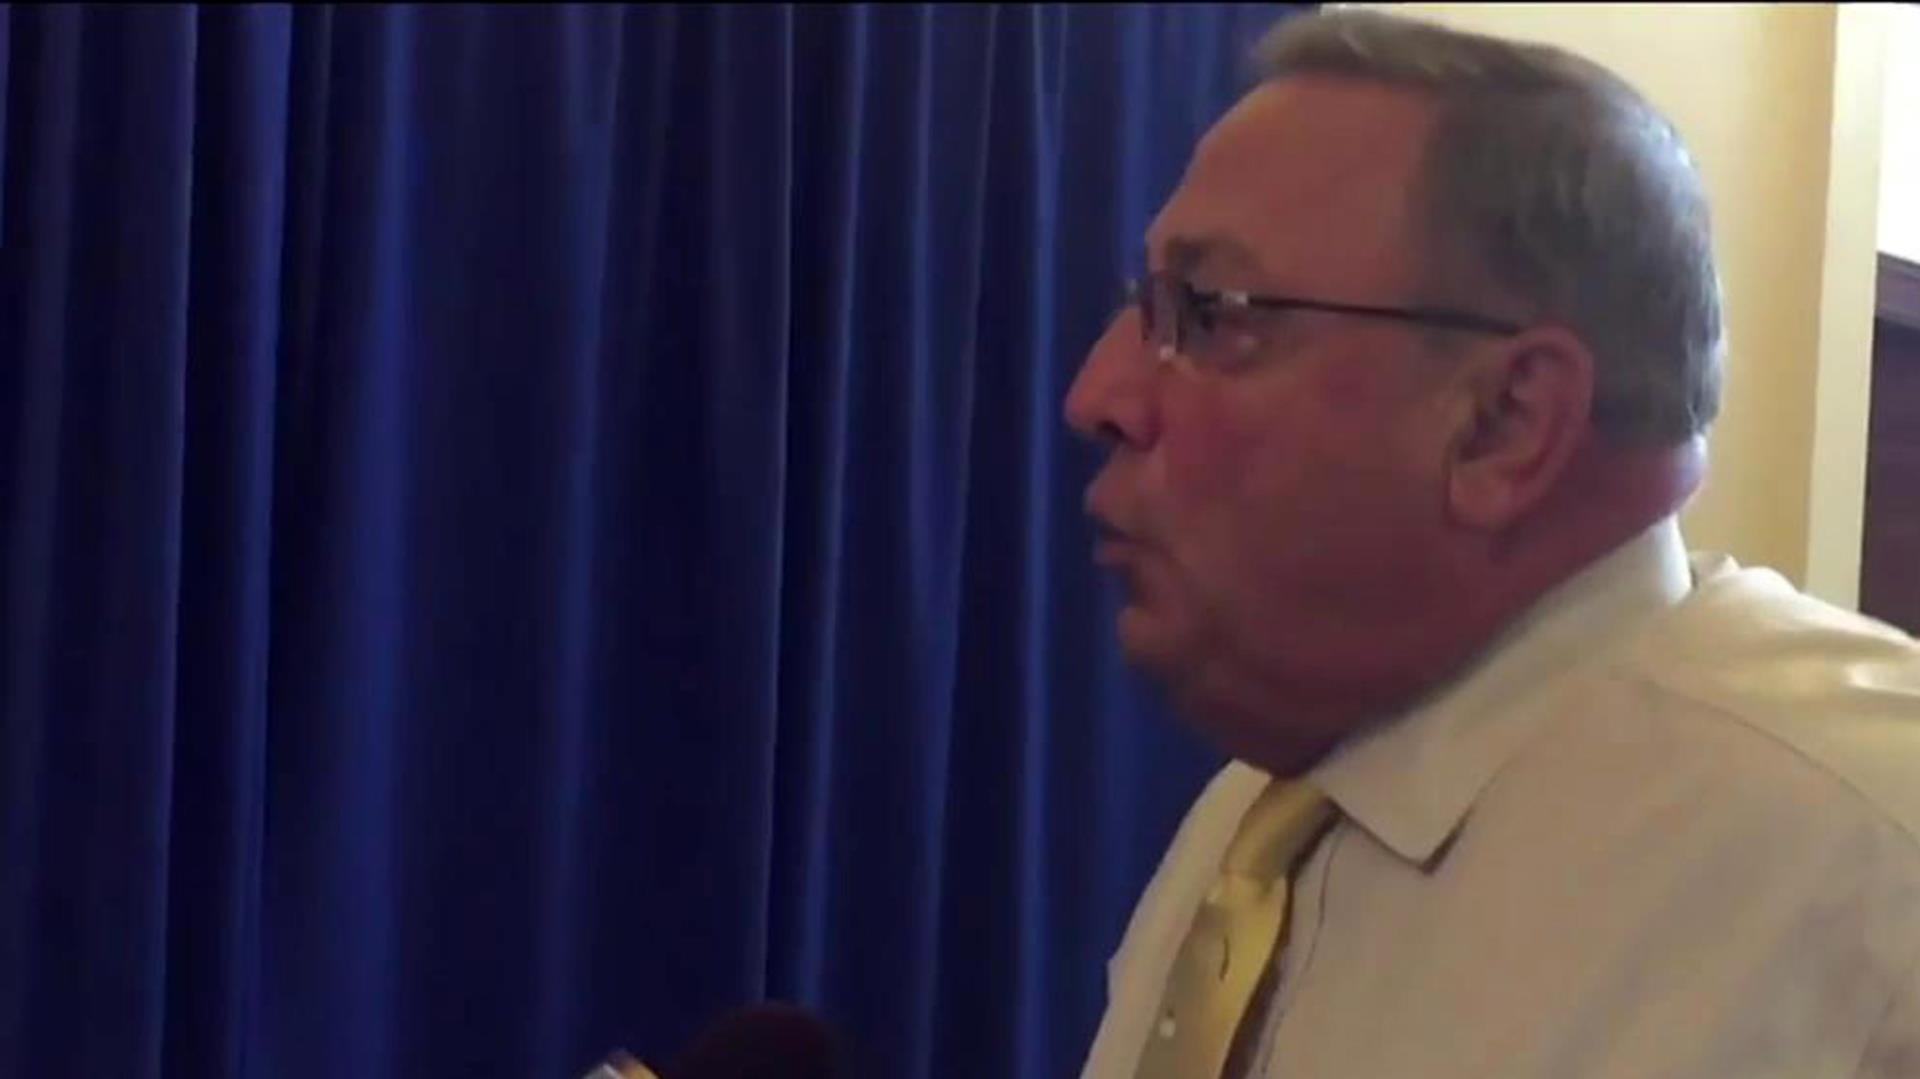 Maine Governor's racist rants spark outrage